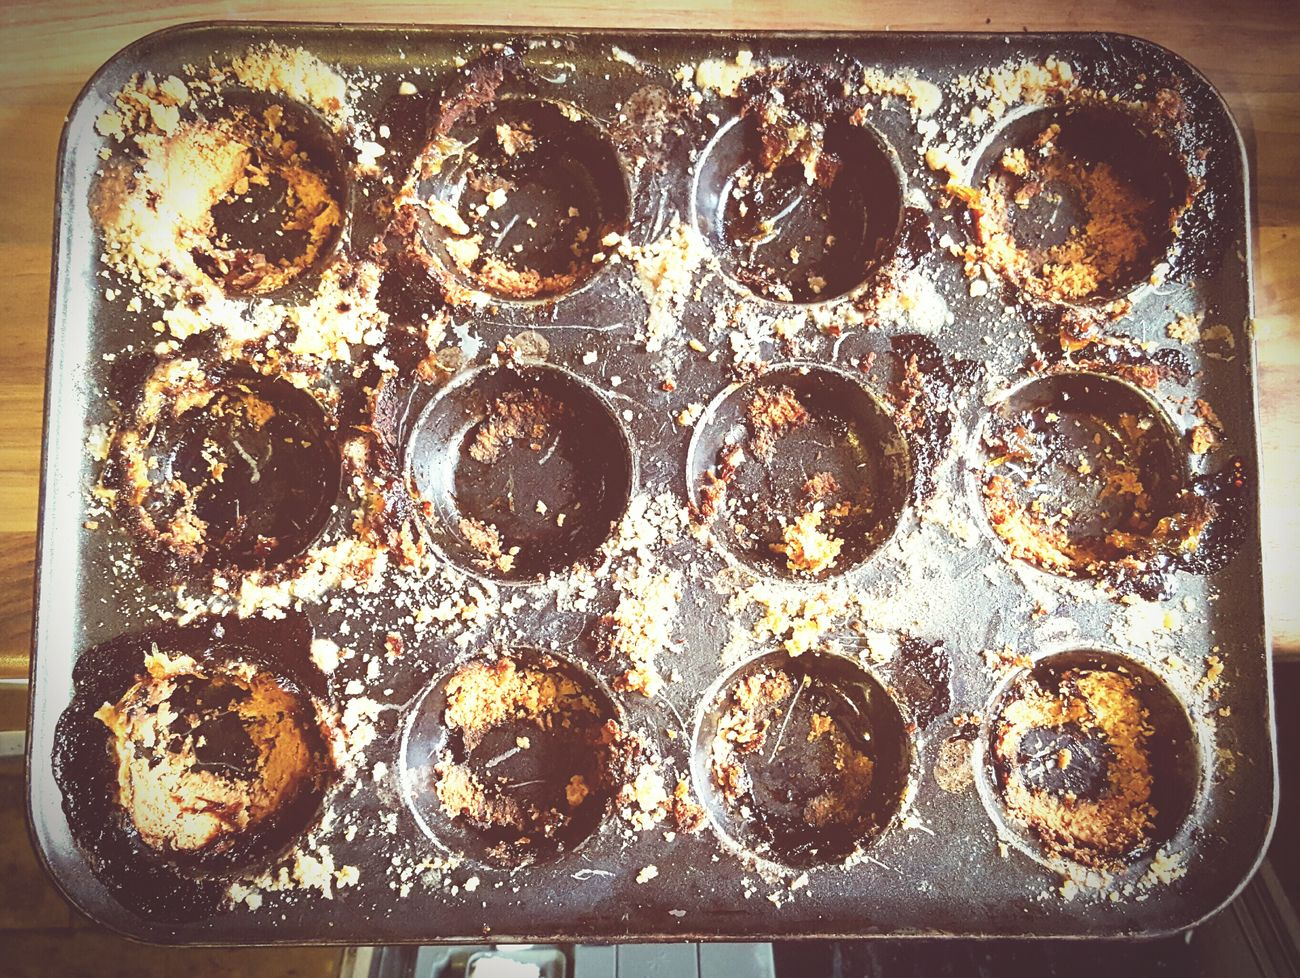 Before Ten Morning After Last Night Pudding Disaster In The Kitchen Baking Tray Burnt Twelve